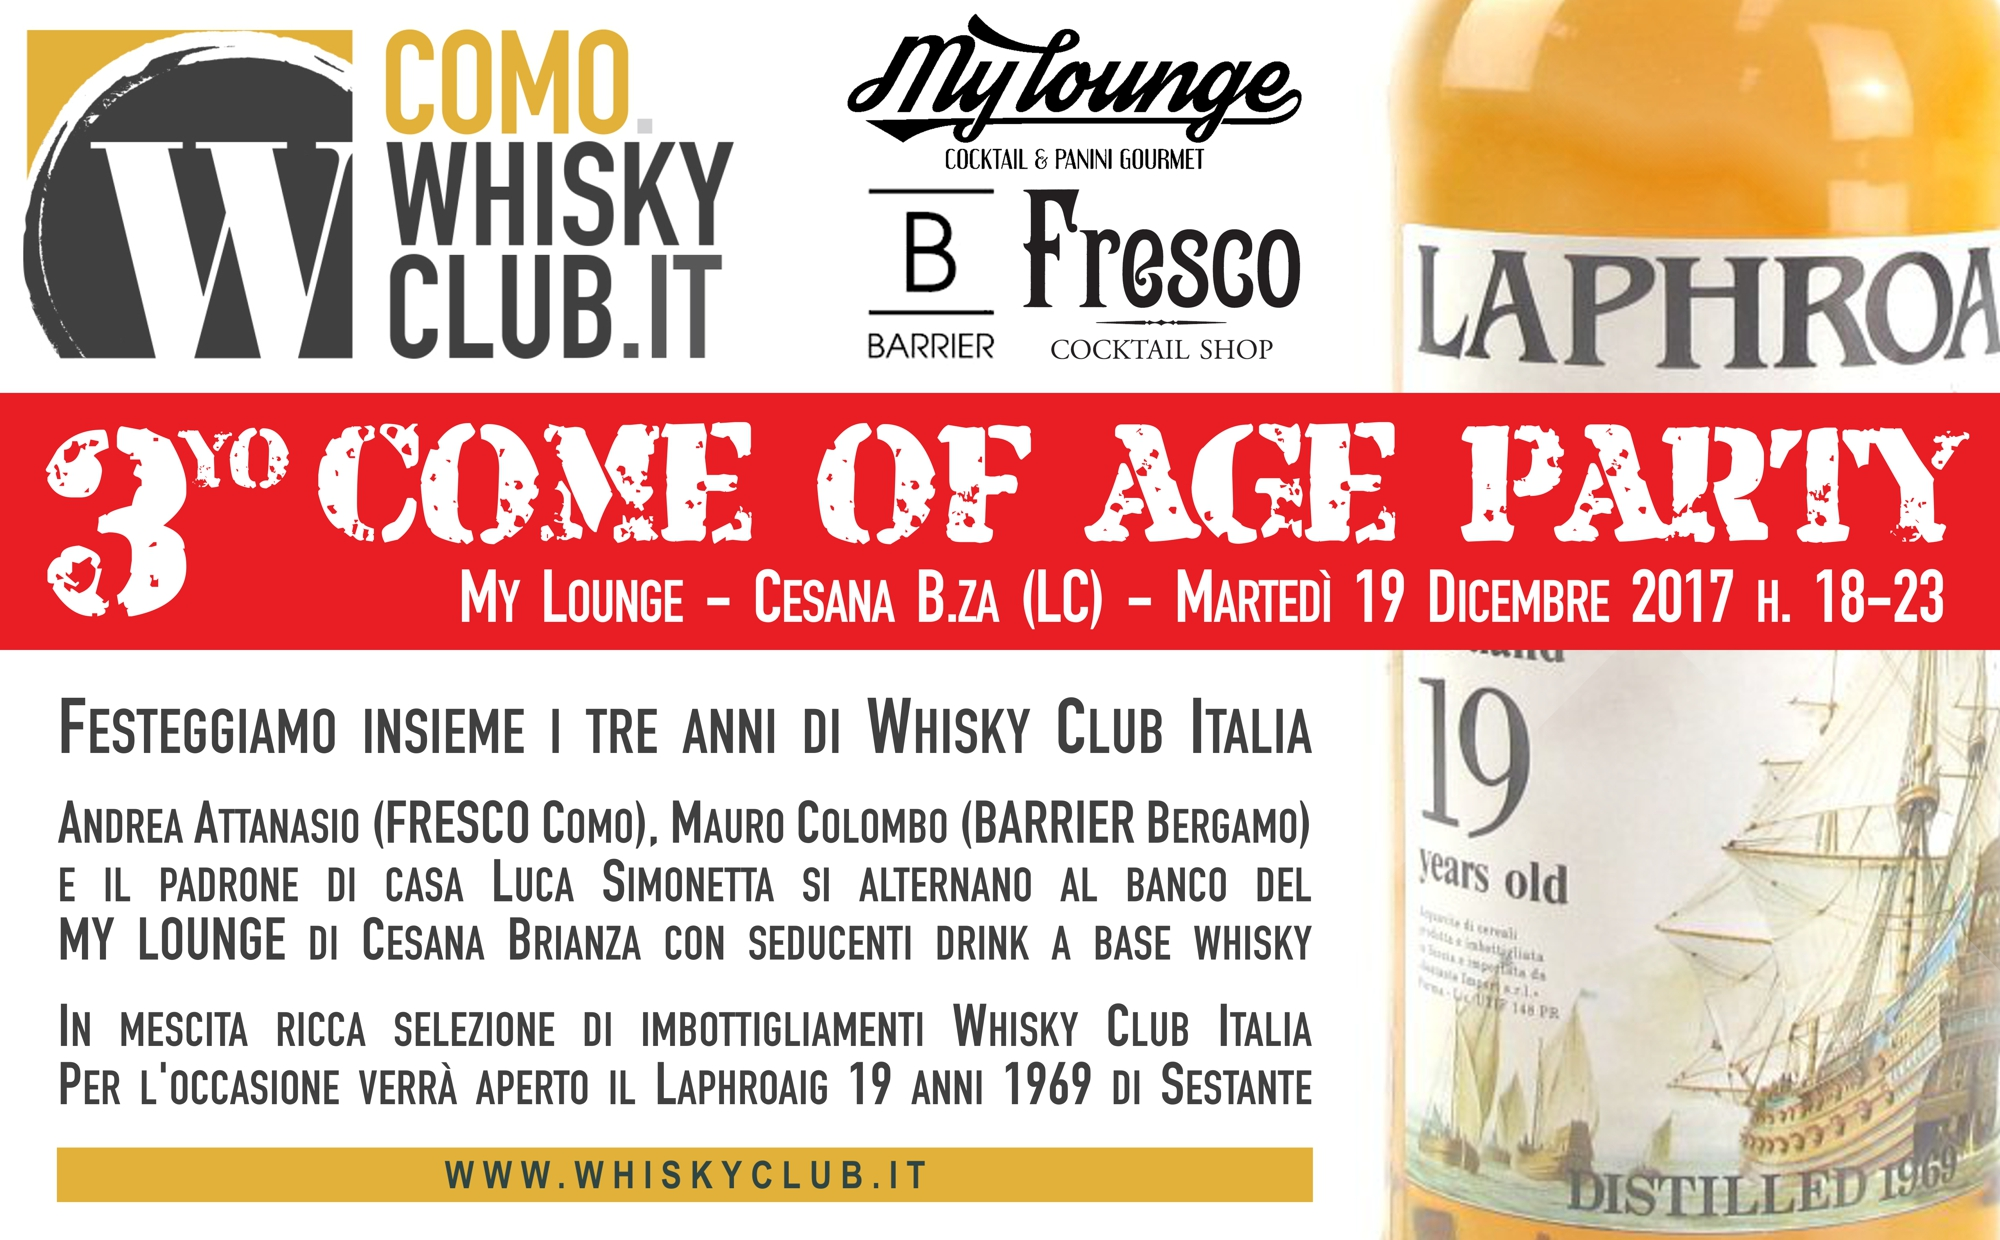 Come of age party